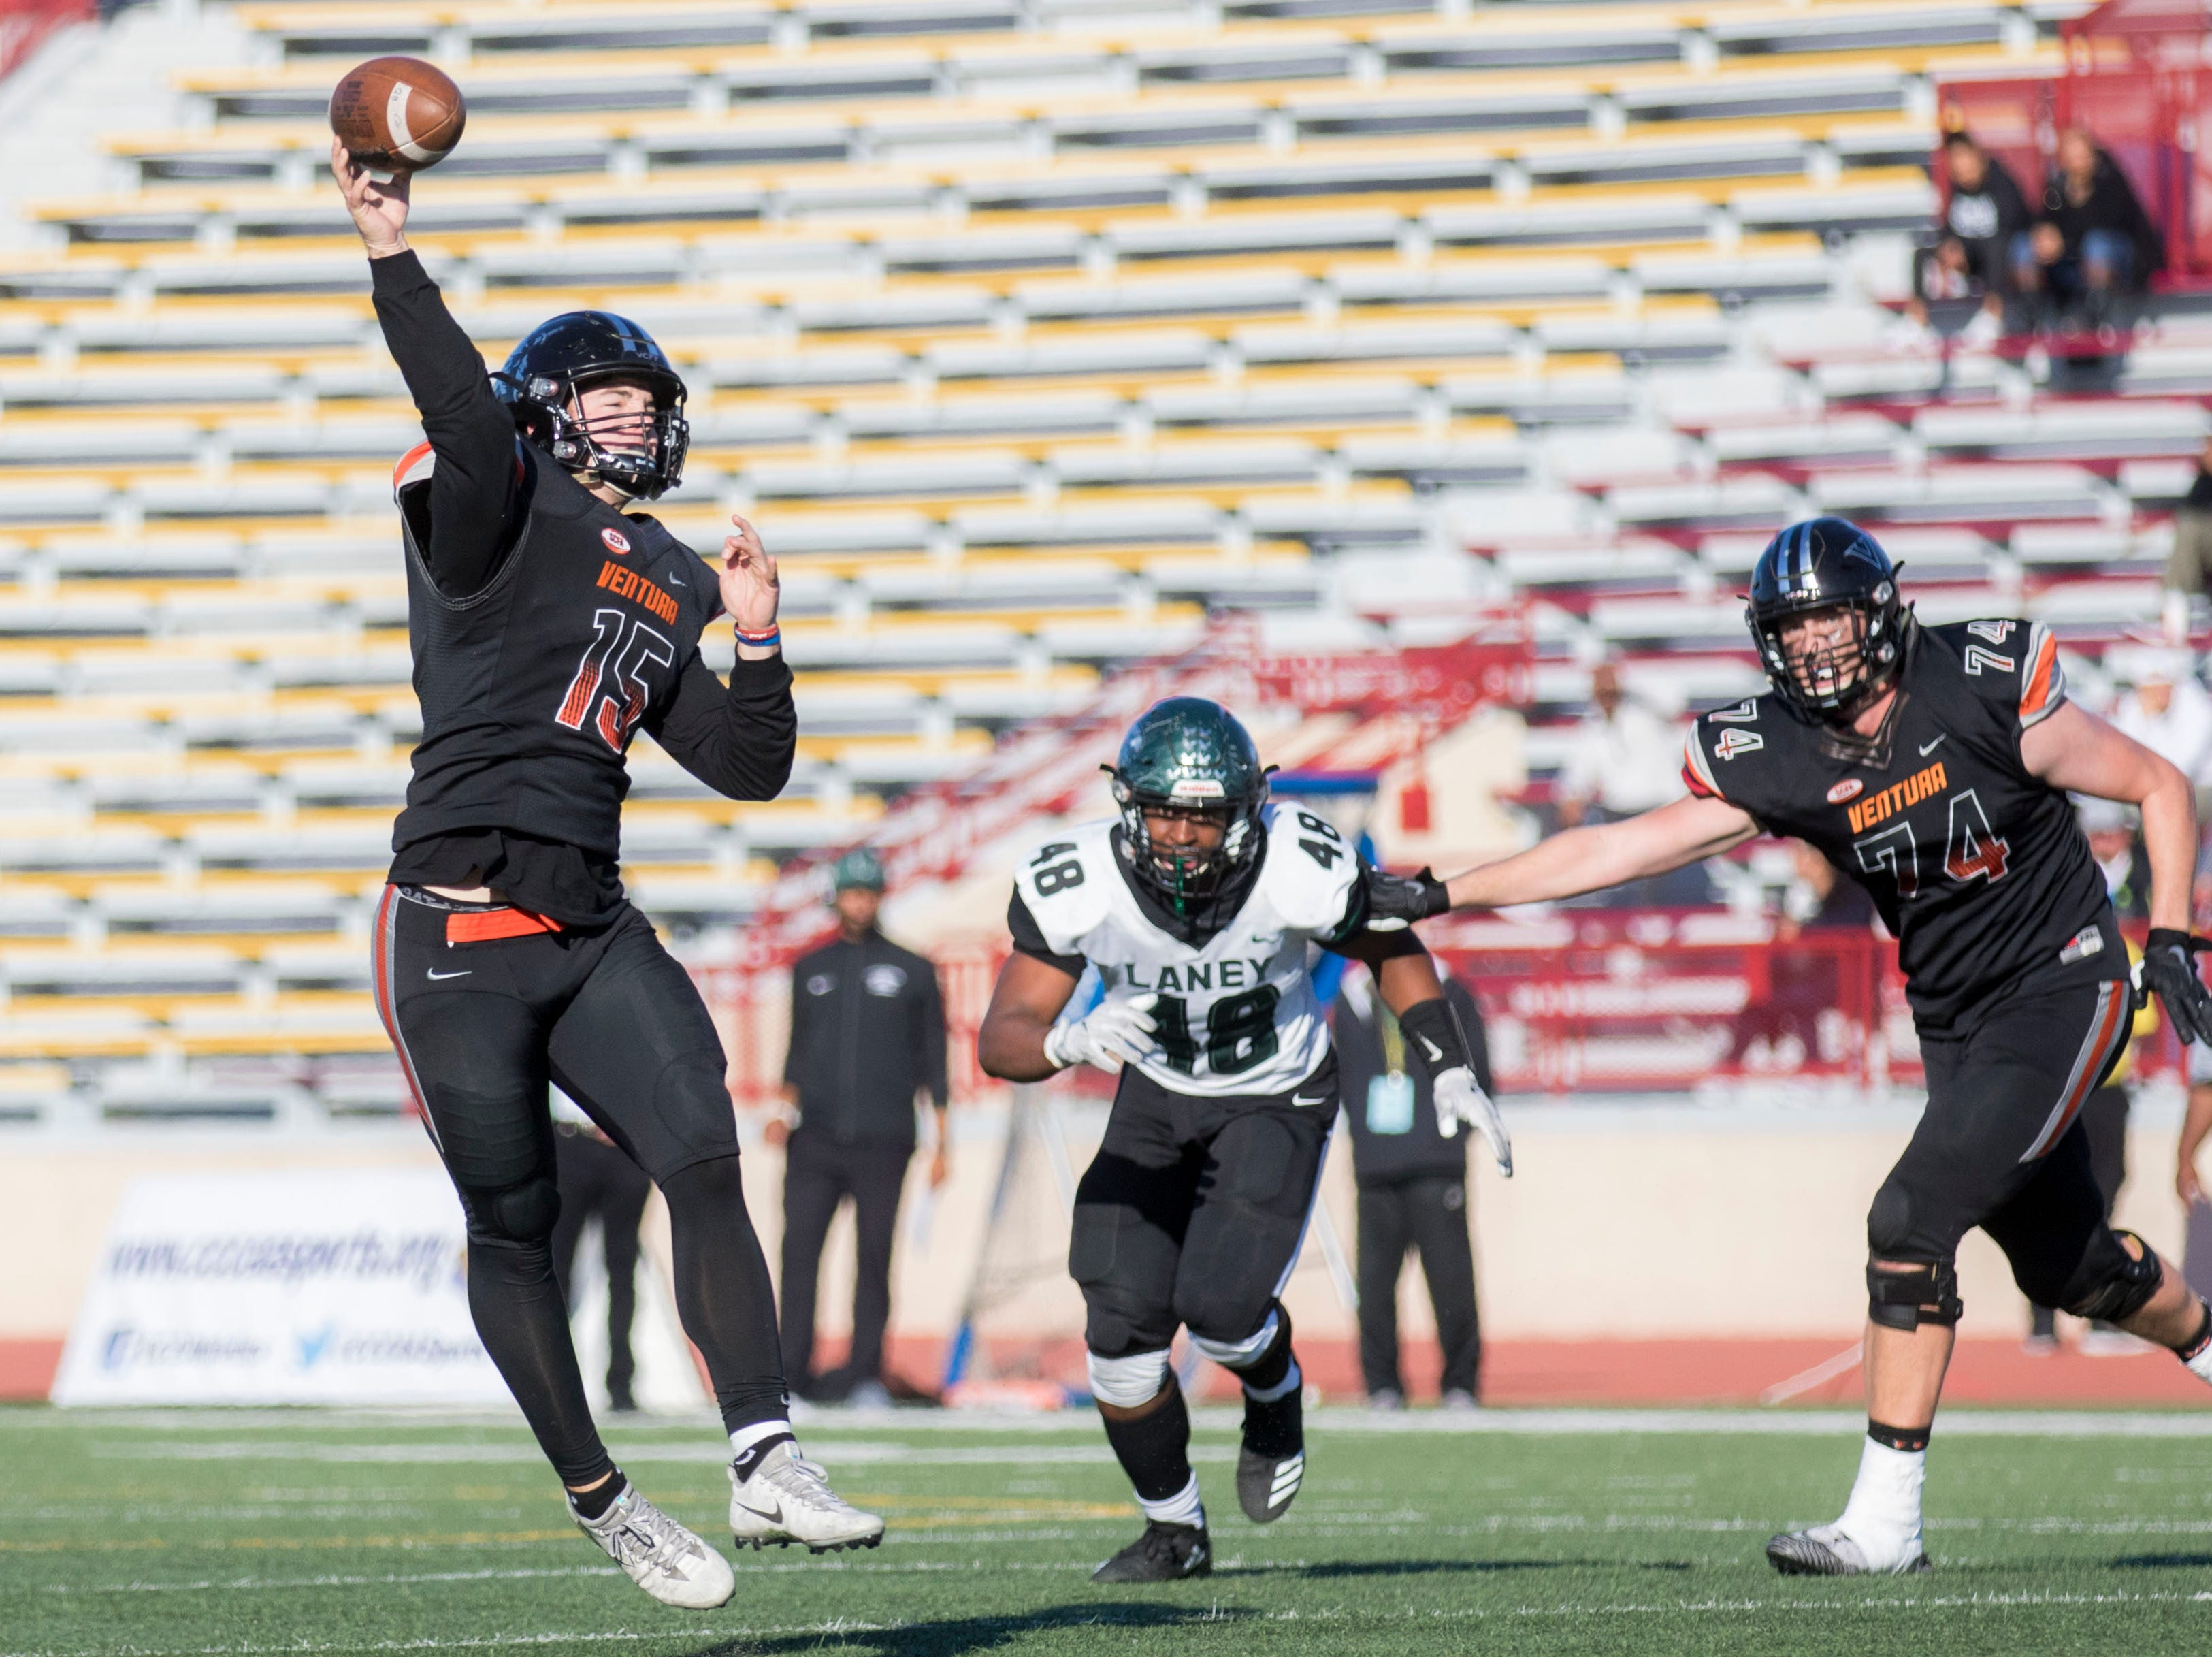 Ventura College quarterback Brock Domann threw two touchdown passes to sophomore Brandon Jordan in the first half Saturday afternoon at the CCCAA state championship game at Sacramento State's Hughes Stadium.